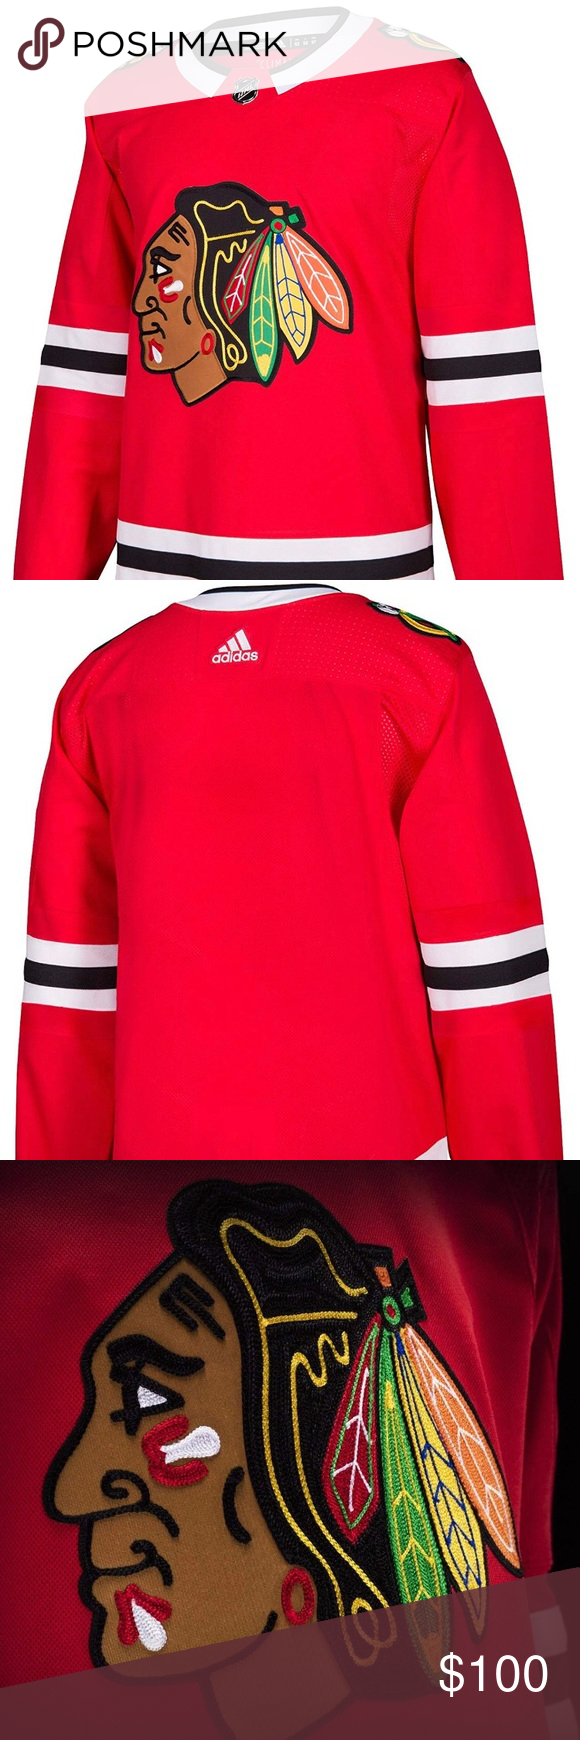 adidas Chicago Blackhawks Authentic Hockey Jersey Show your love for your team every time you wear this Authentic Hockey Jersey. This jersey features the embroidered authentic team crest on the chest, open hole mesh shoulders, platinum NHL Shield on the front neck, authentic tie down fight strap, contrast color piecing on the sleeves and sides, secondary color neck banding, Climalite technology to keep you comfortable.  Officially licensed by the NHL. Size breakdown is as follows: Small = 46, Medium = 50, Large = 52, XL = 54 and XXL =56. adidas Shirts Sweatshirts & Hoodies